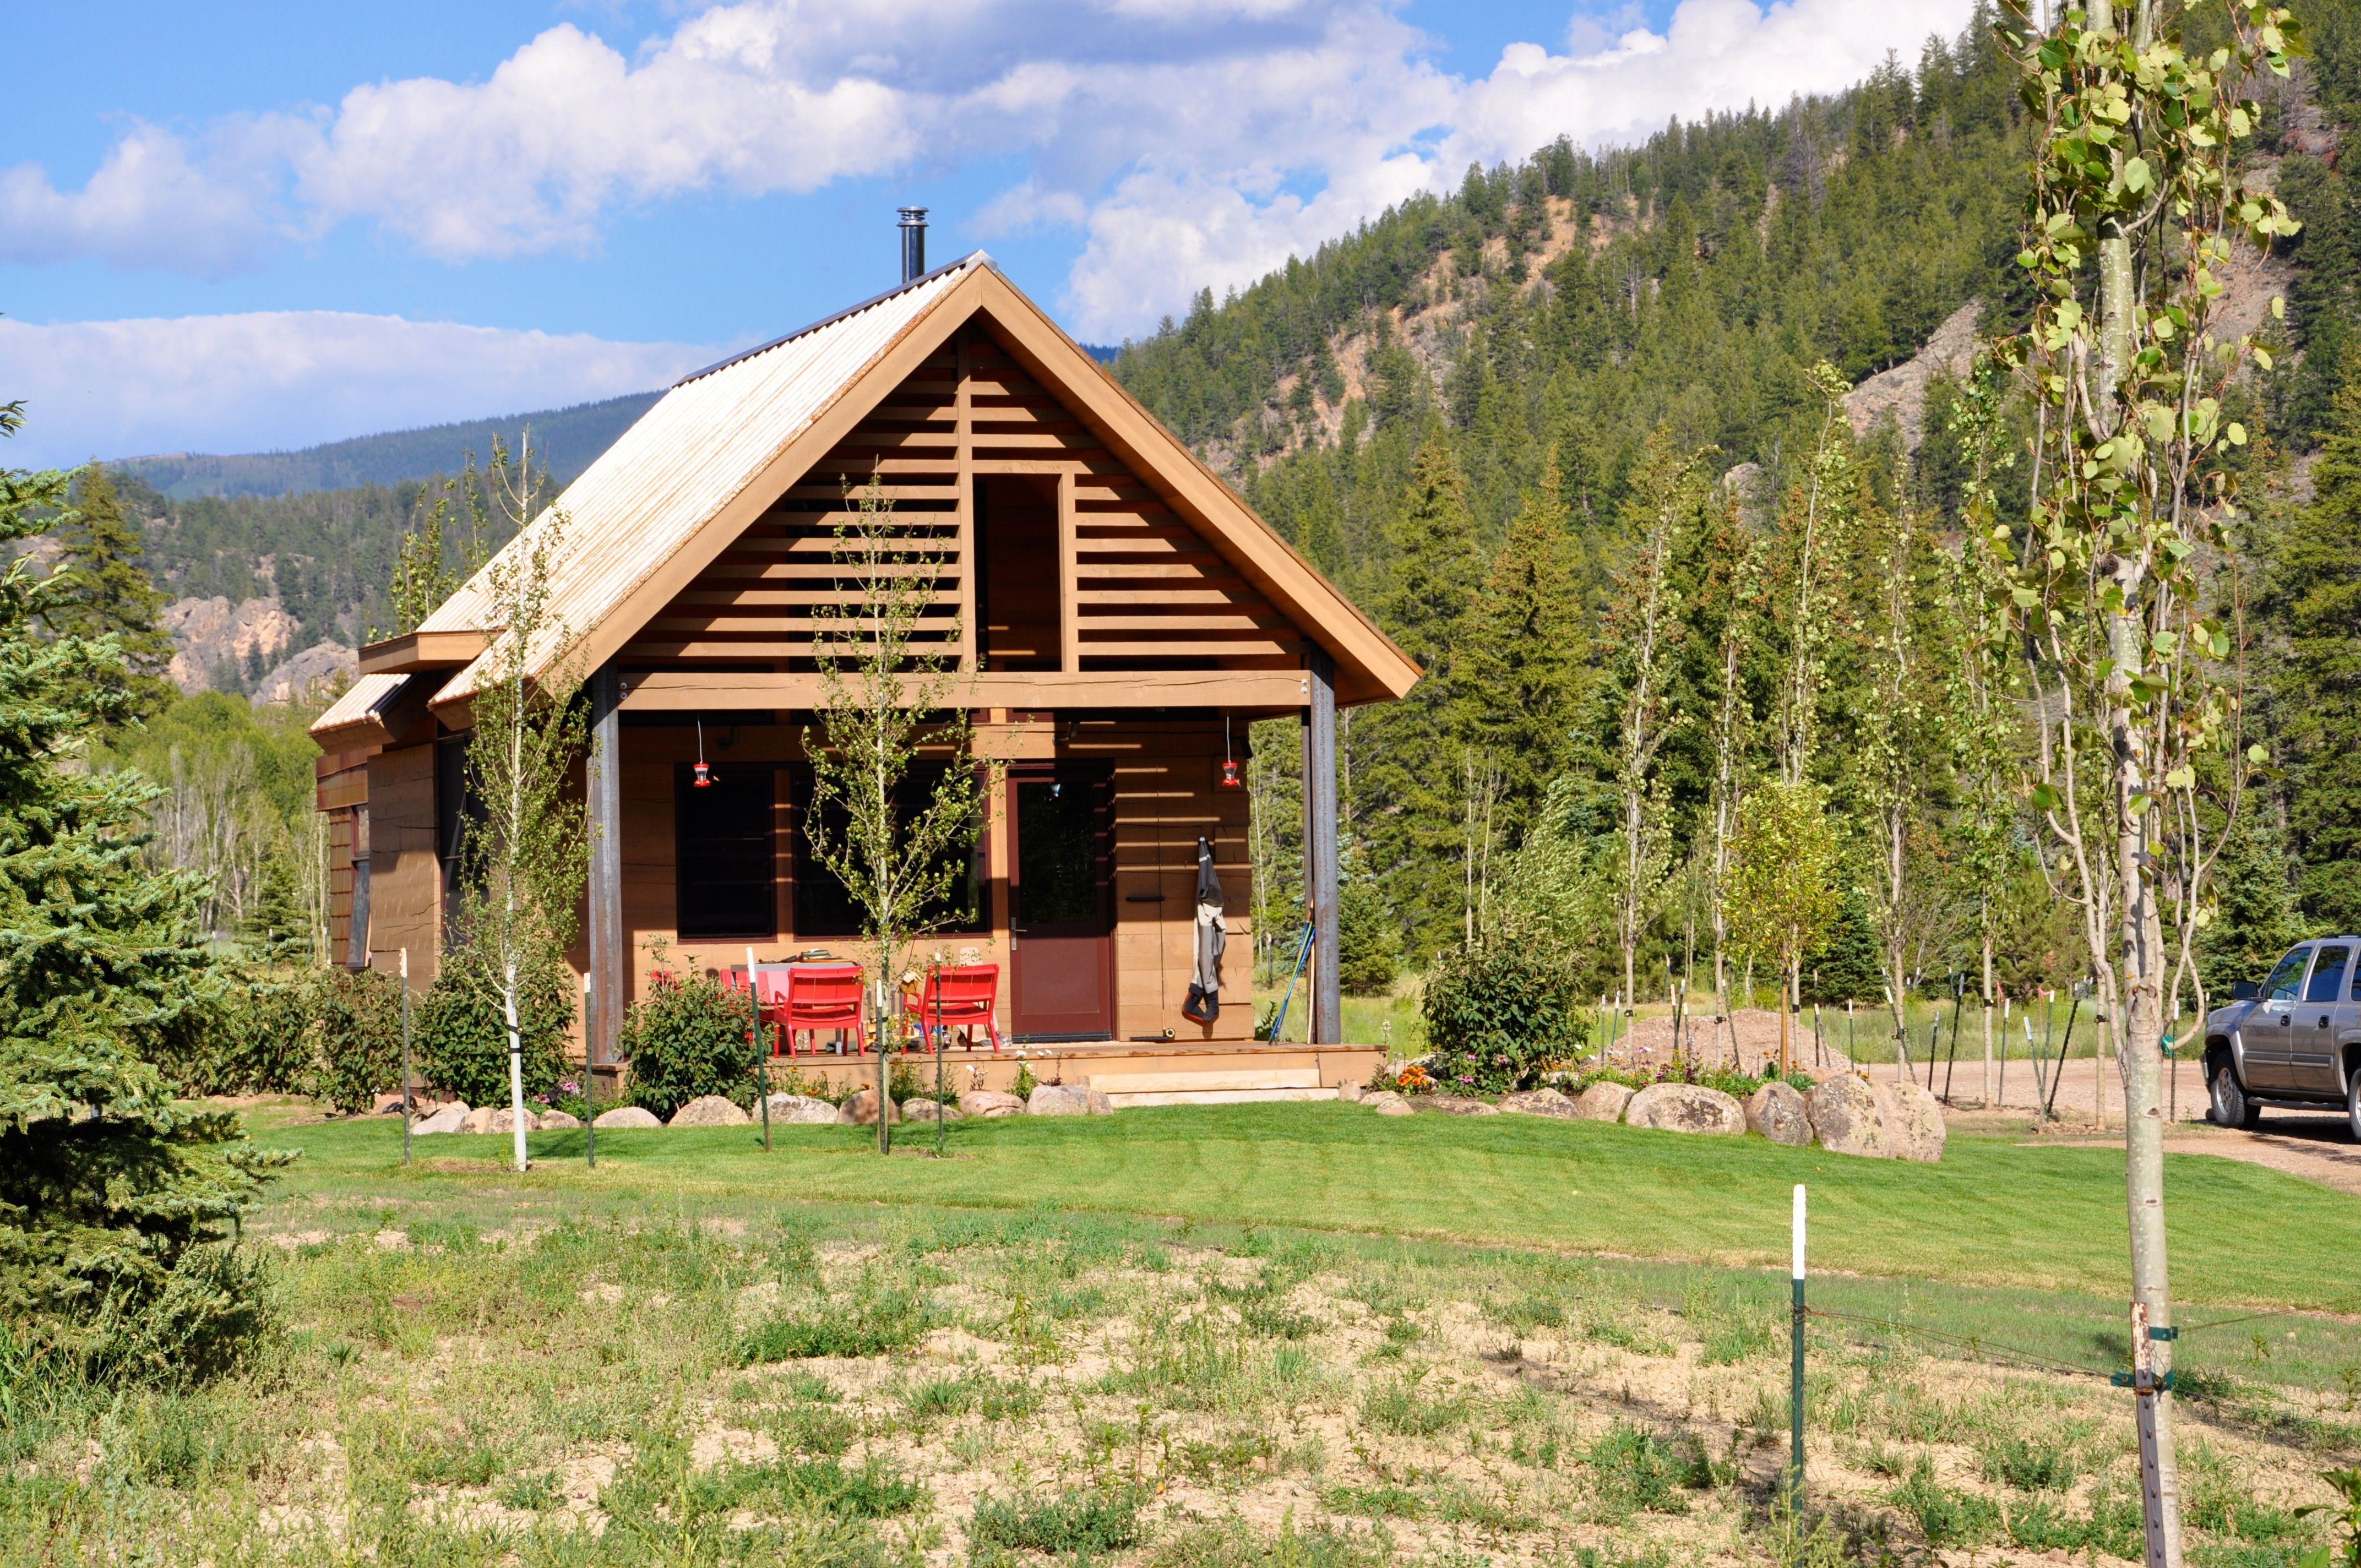 images of cabins in the mountains Mountain Cabins Sale Colorado